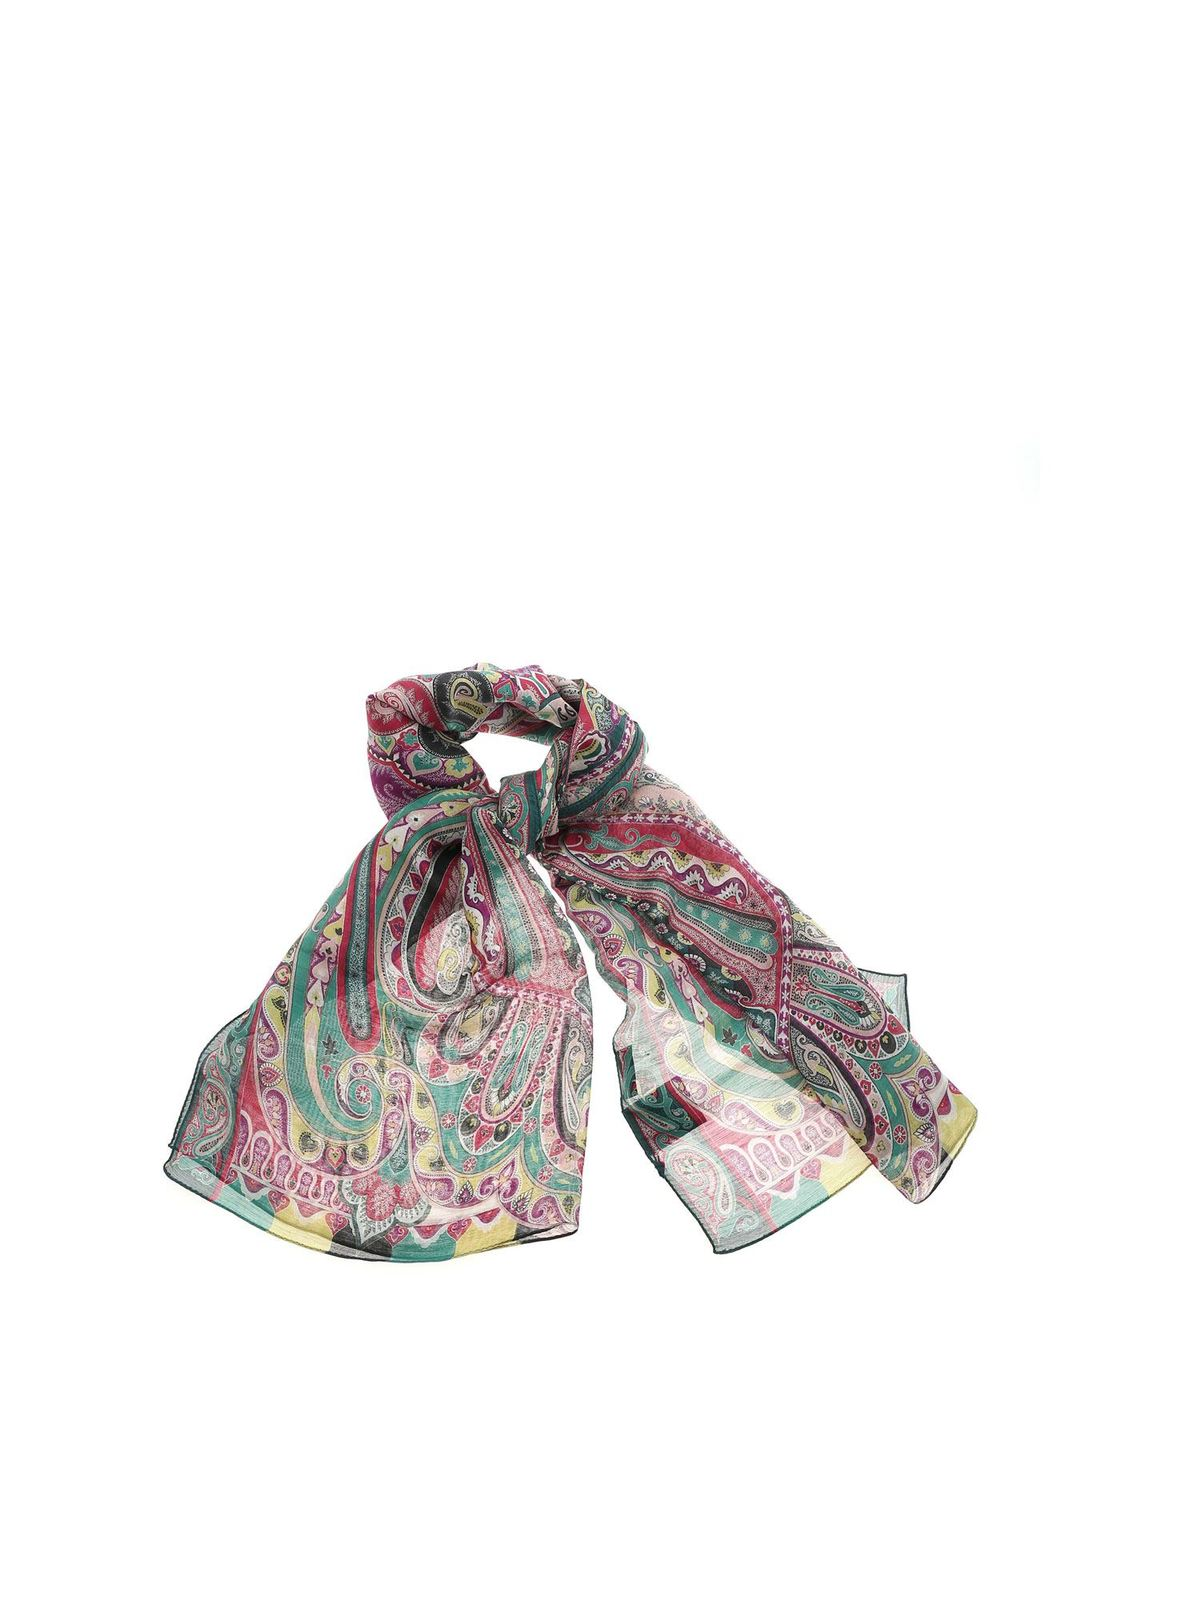 Etro Accessories CONTRASTING PATTERN PASHMINA IN GREEN